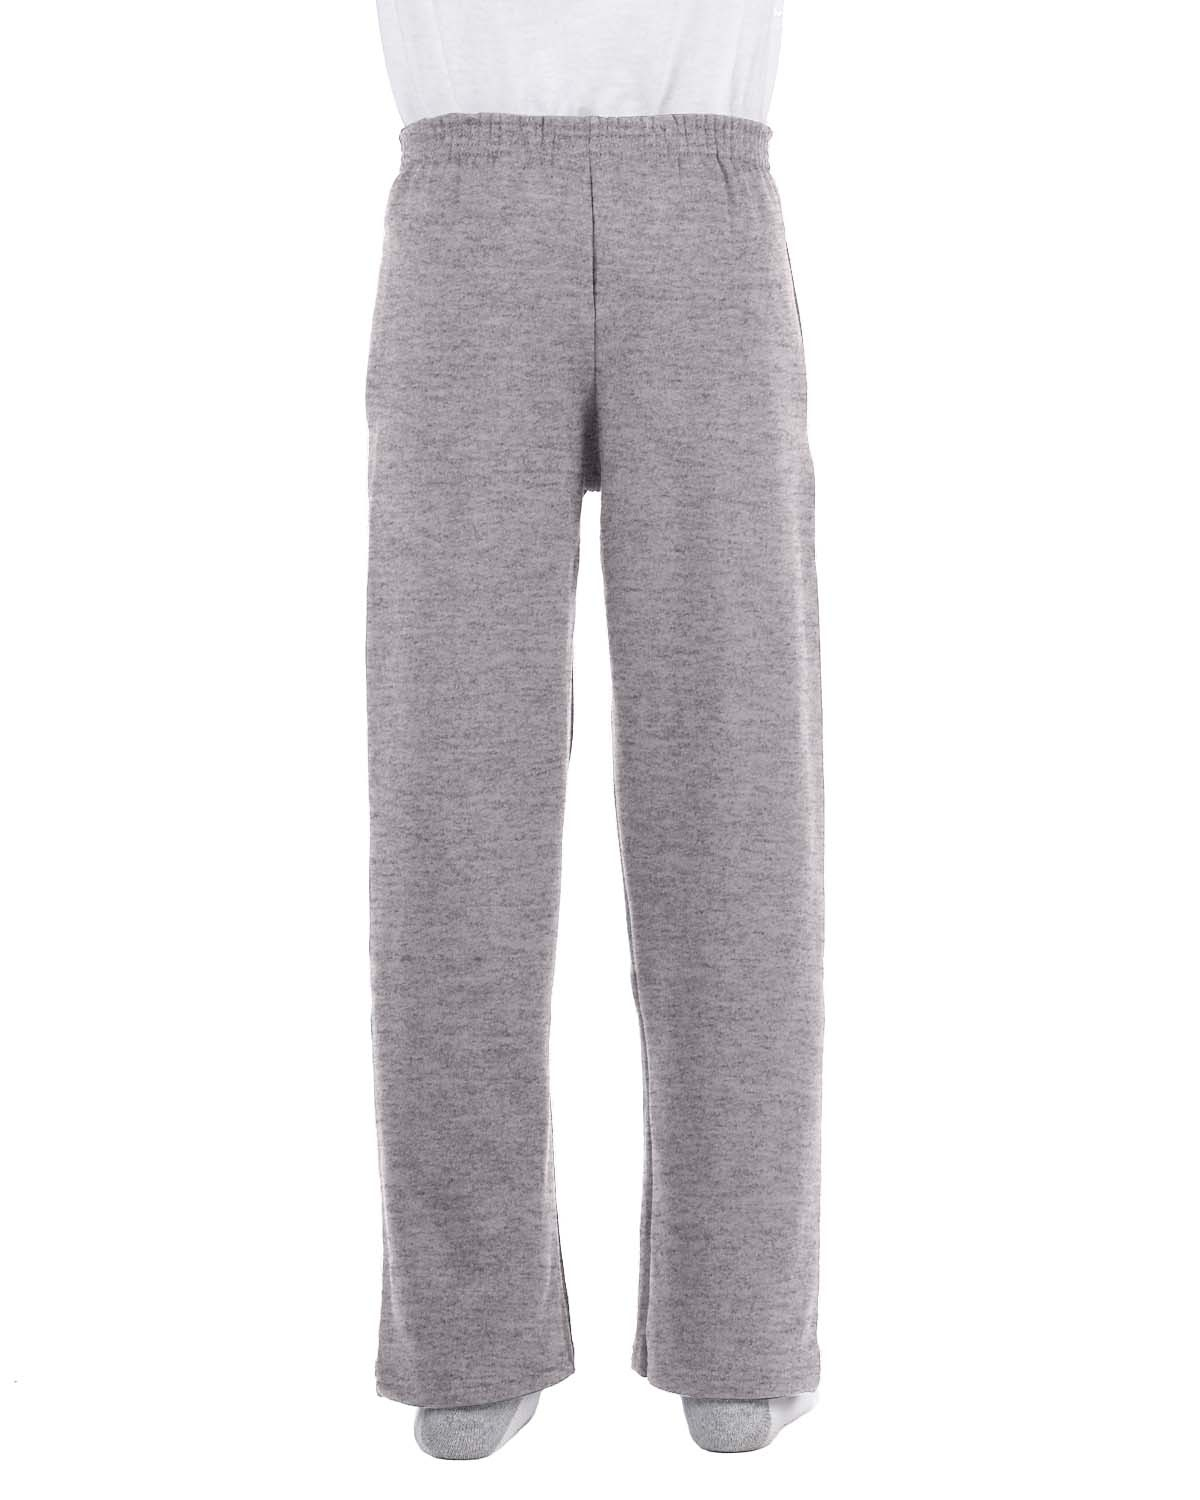 'Champion P890 Champion Youth Double Dry Action Fleece Open Bottom Pant'